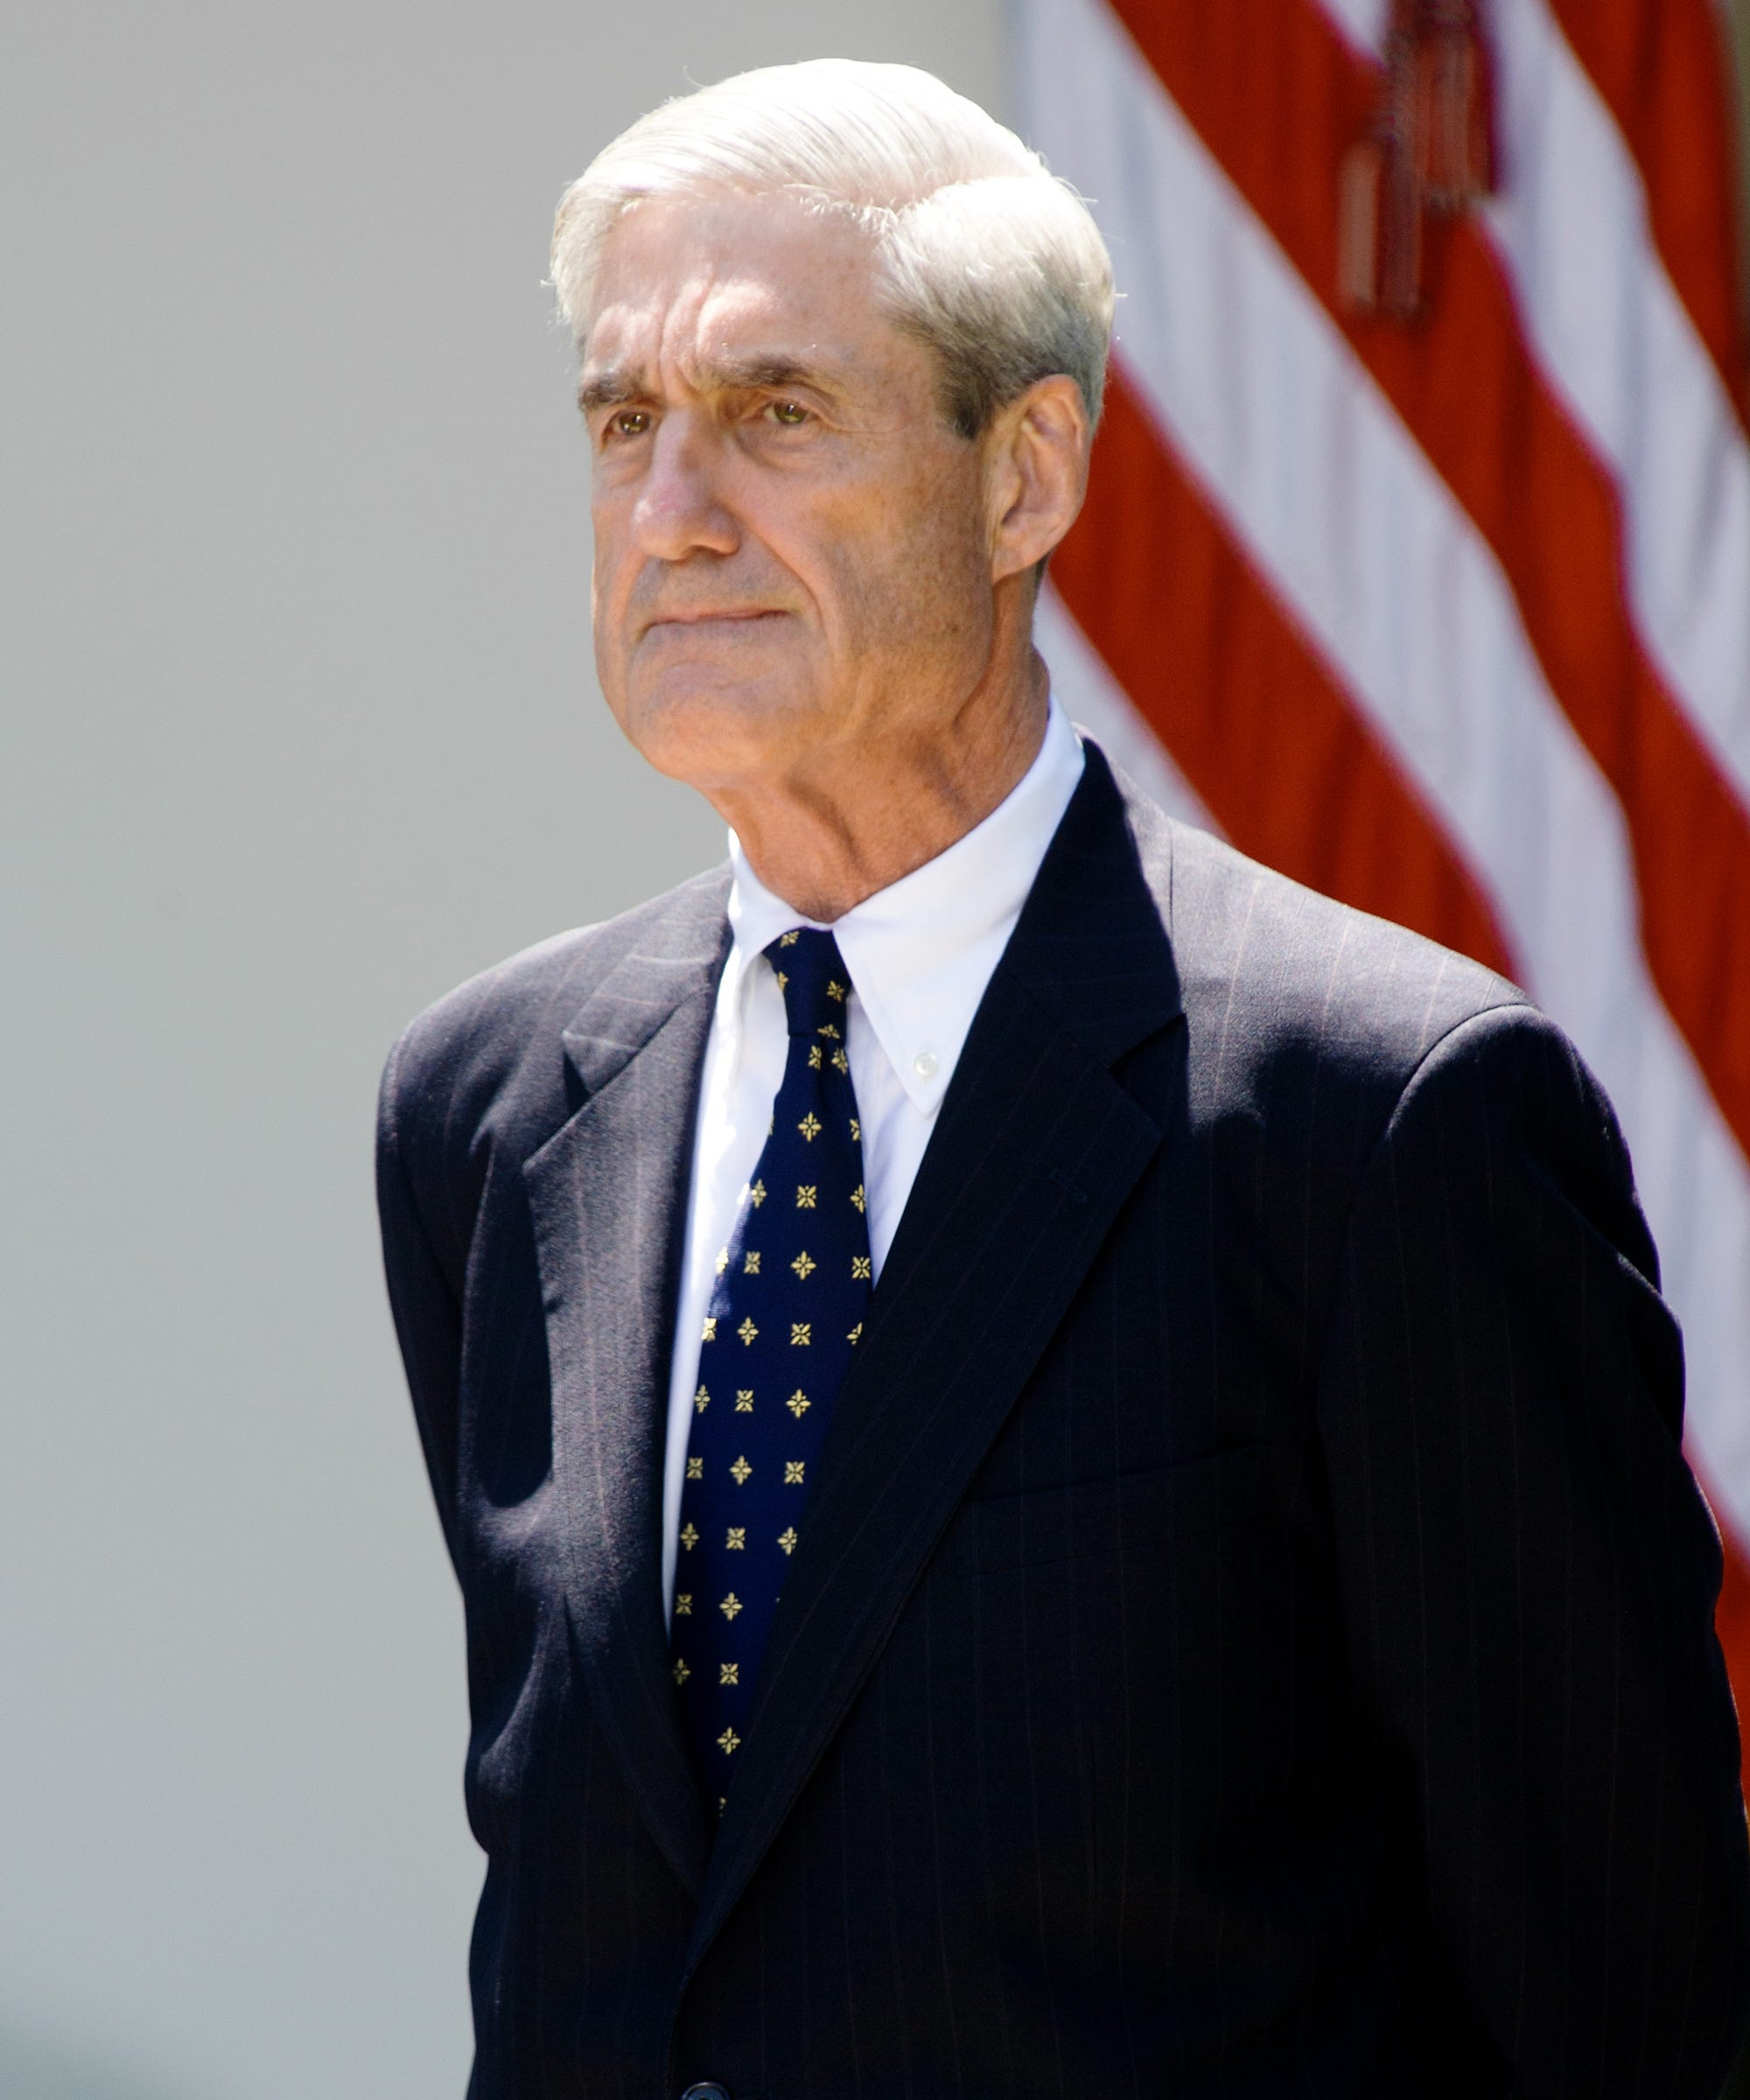 Report: Grand Jury Provides First Indictment In Mueller's Russia Probe